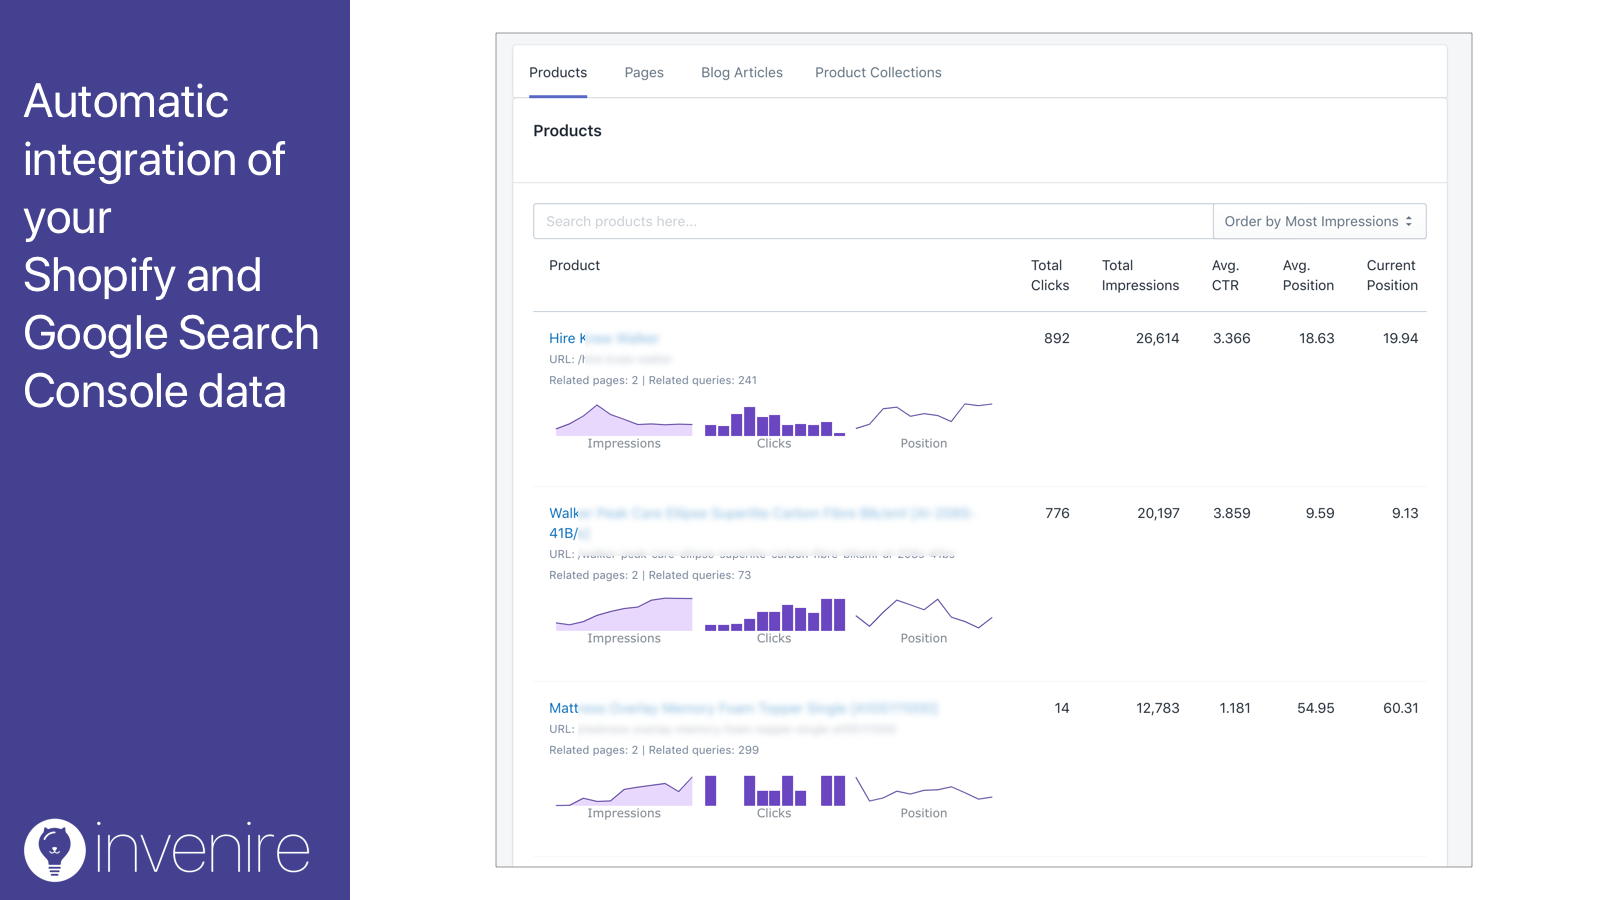 Automatic integration of your Shopify and Google Data